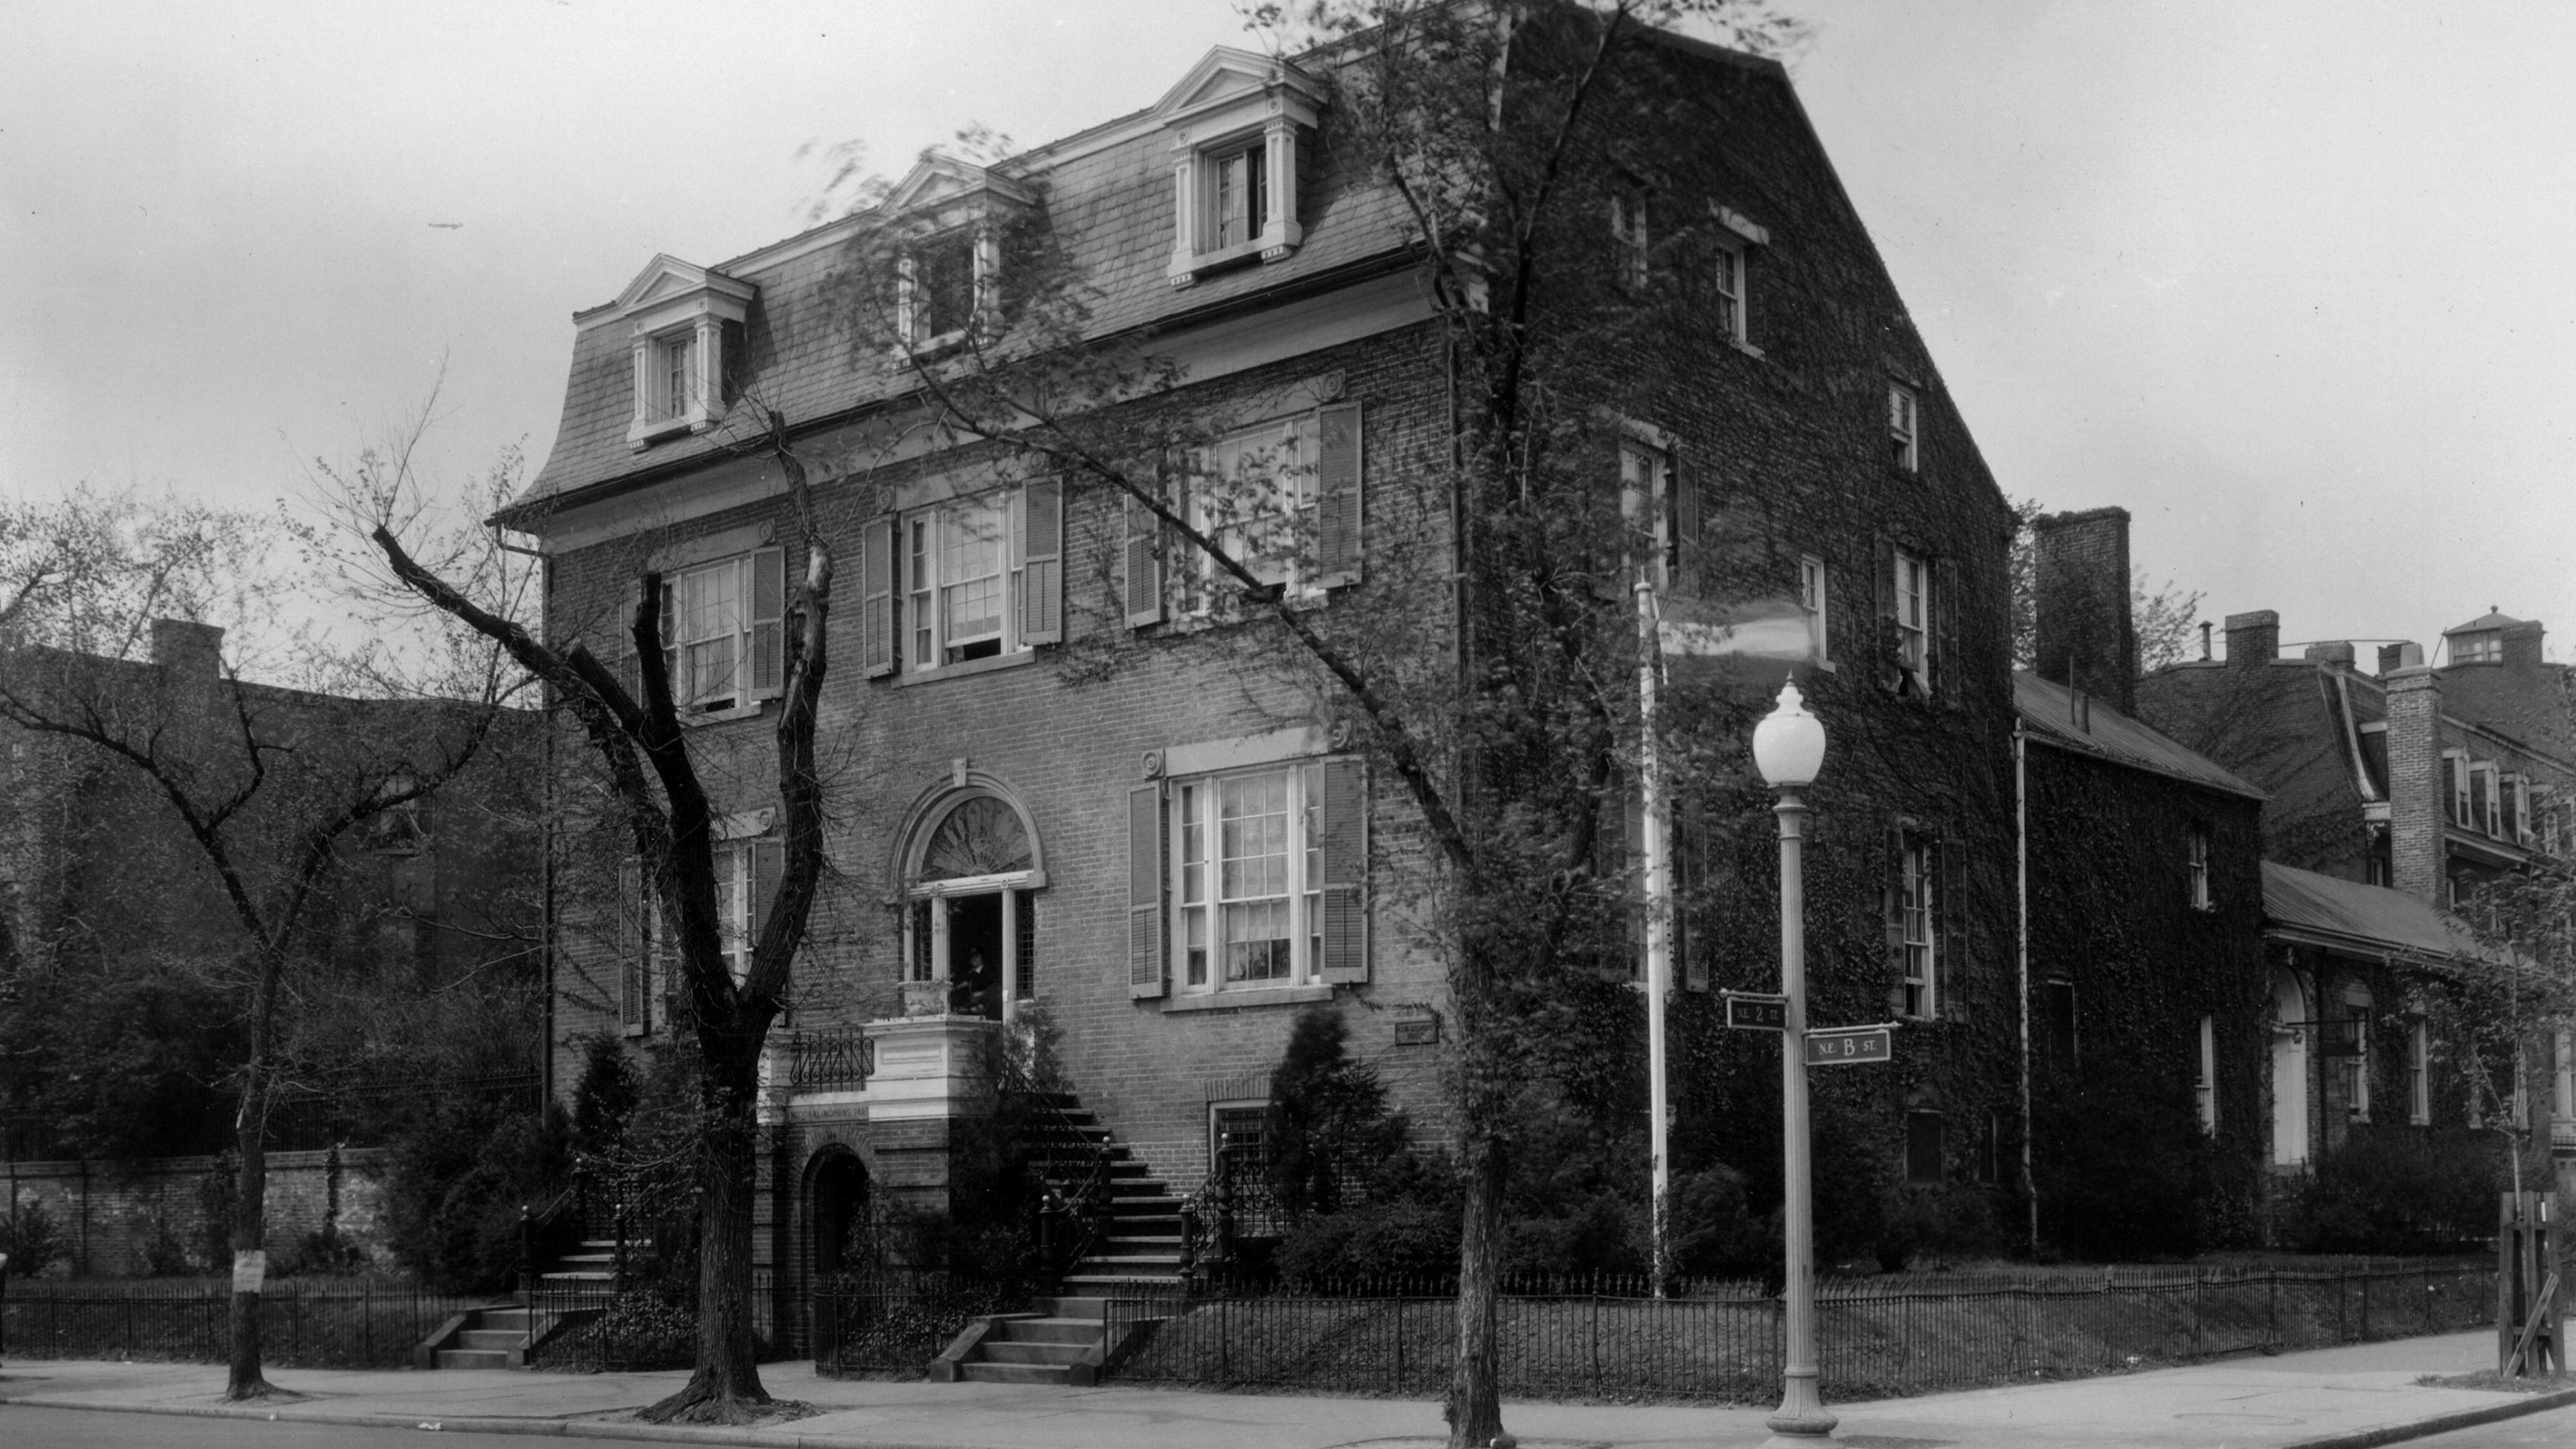 Black and white photo of the Belmont Paul house